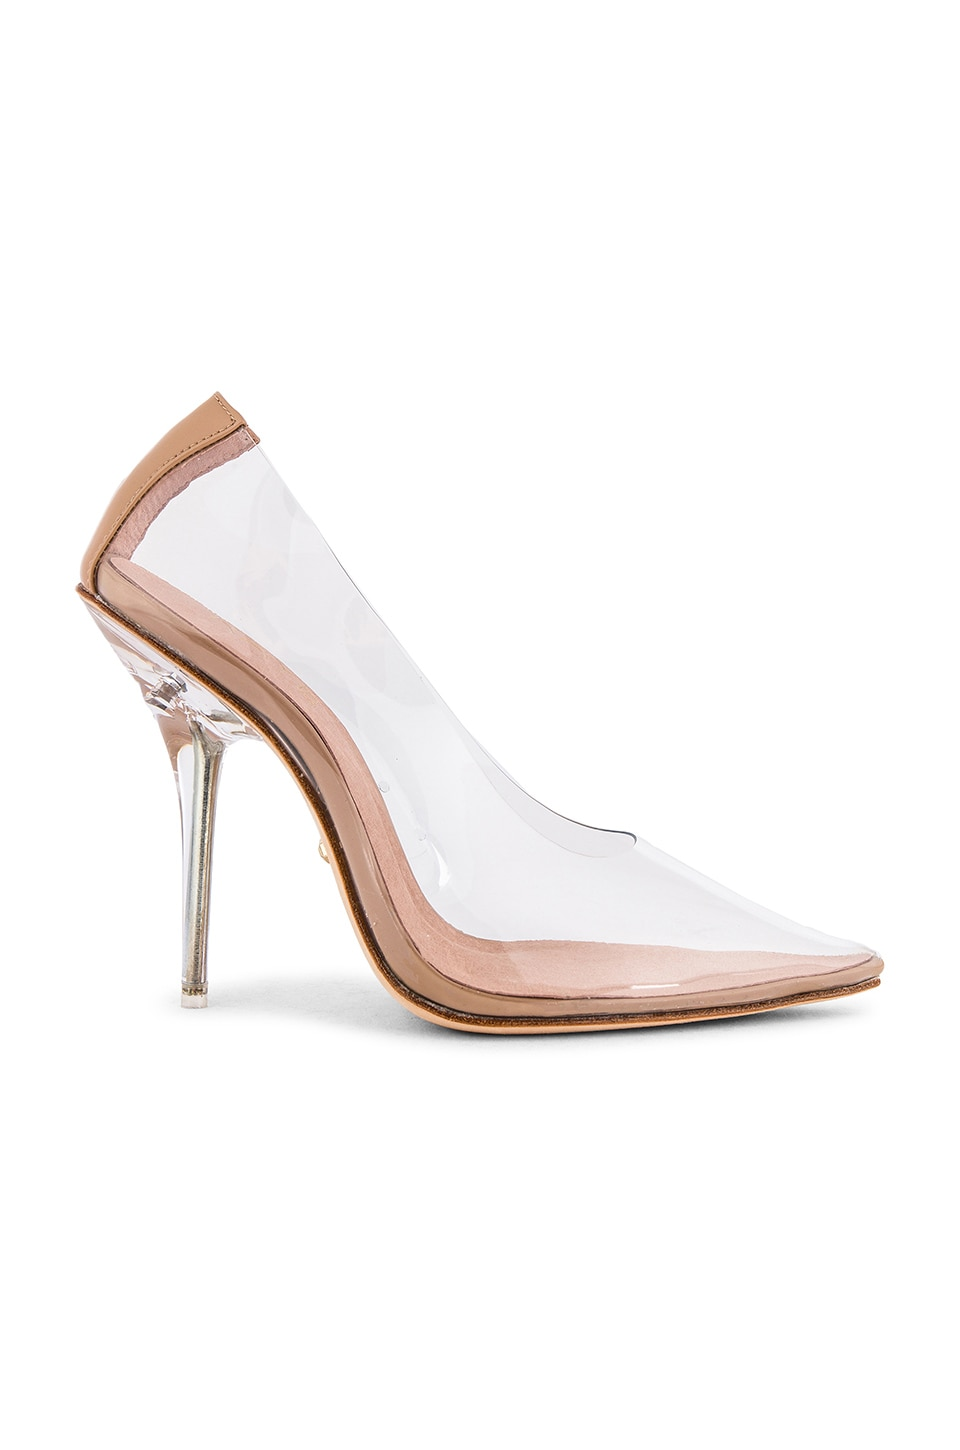 RAYE Laurise Heel in Nude